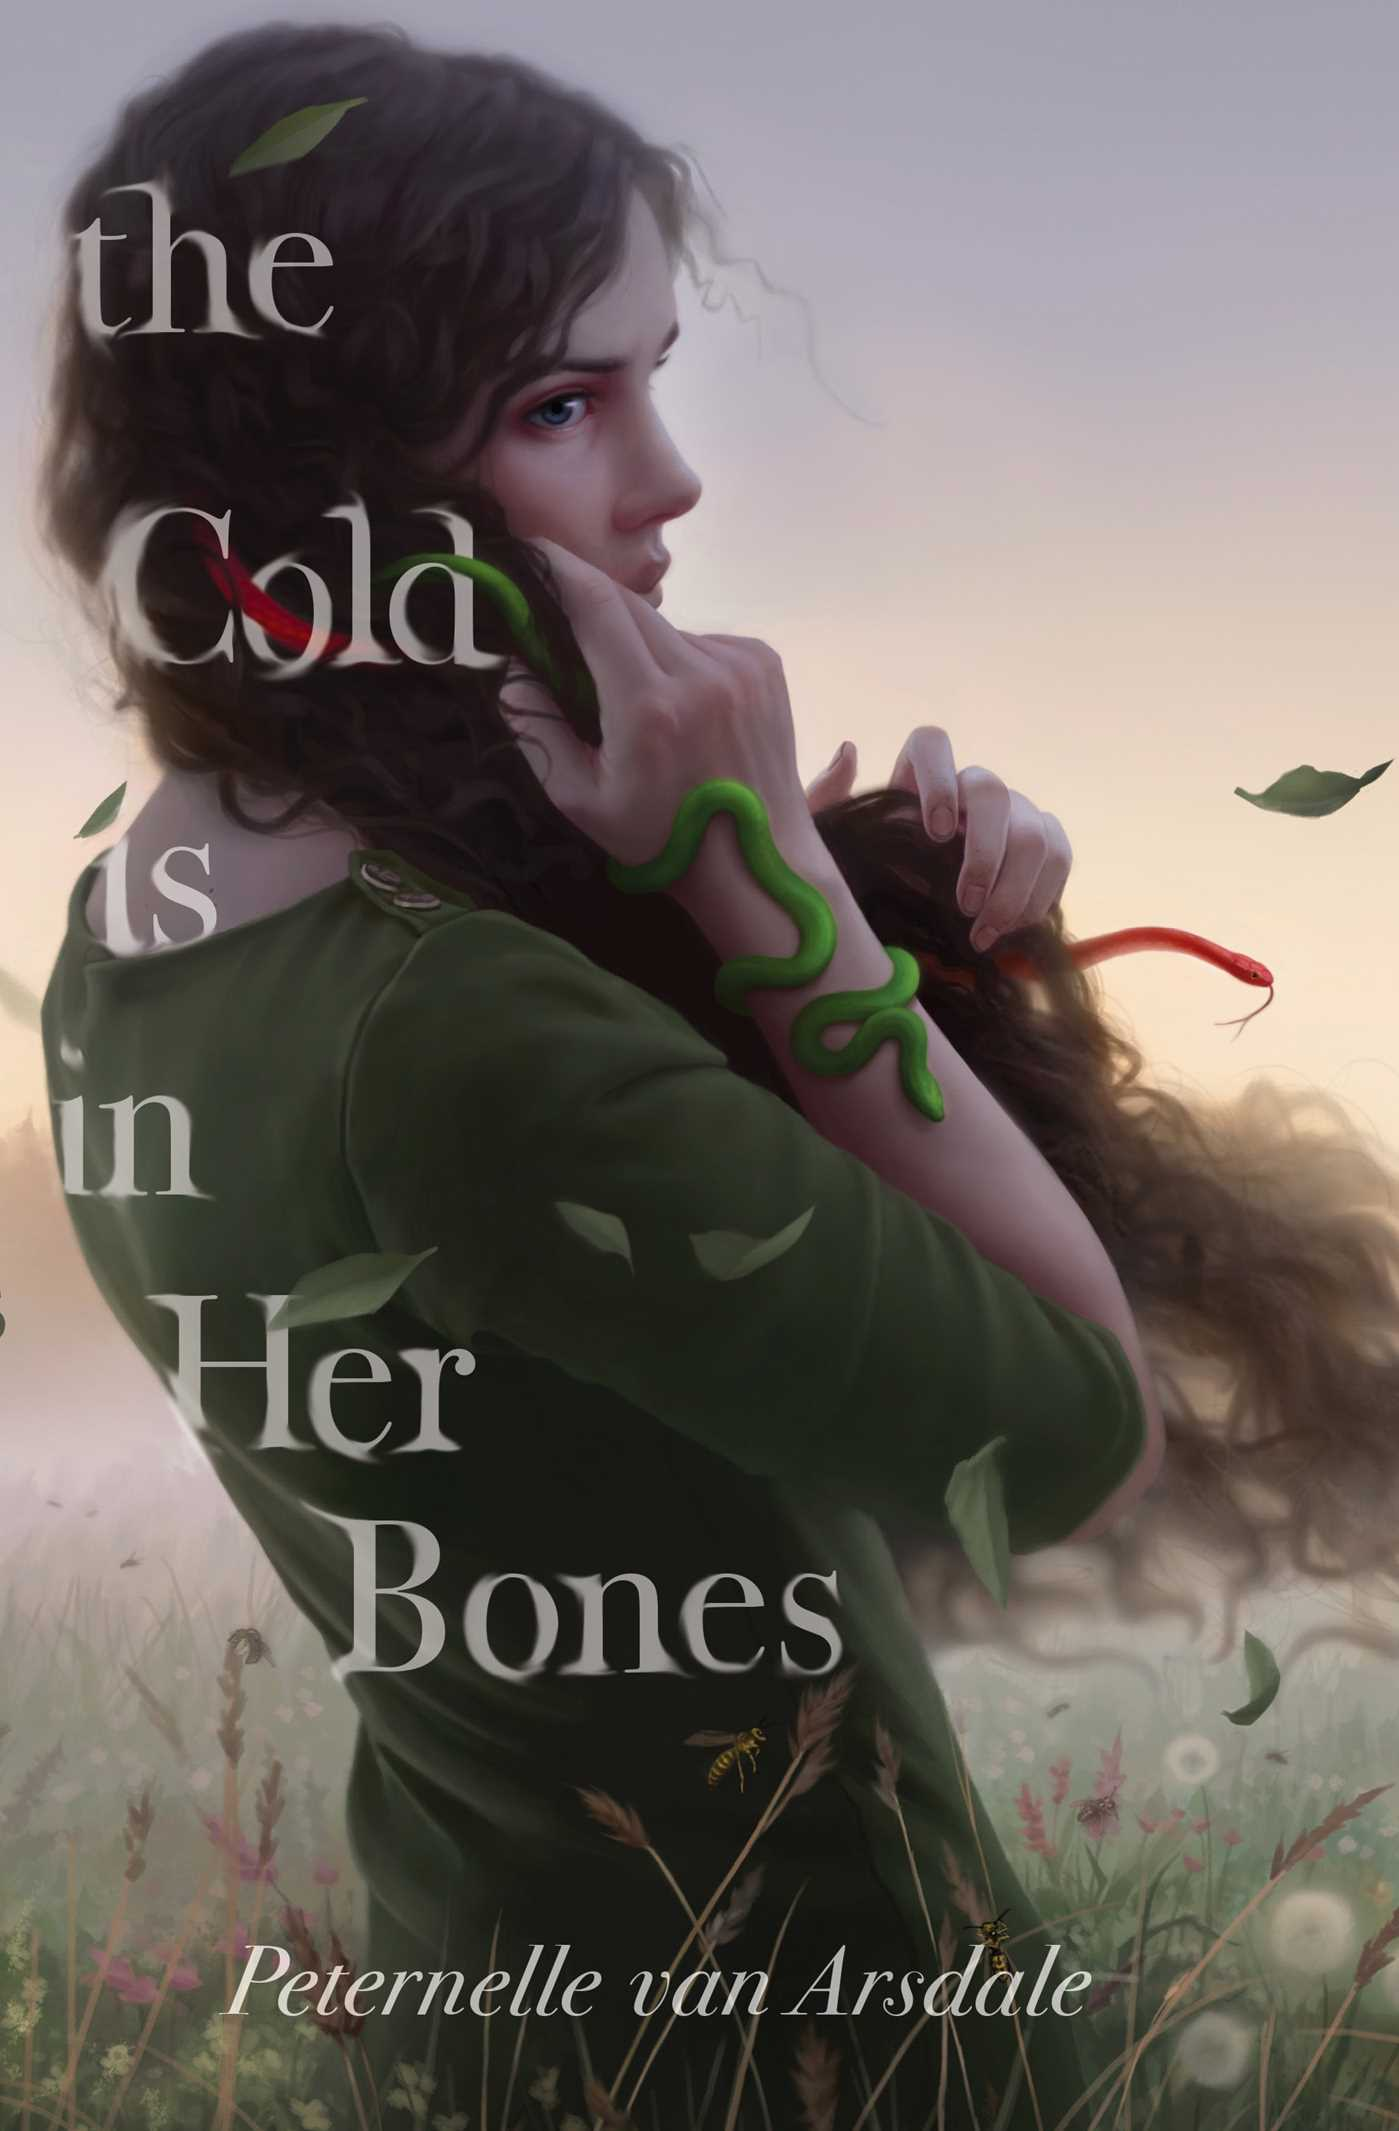 ARC Review | The Cold is In Her Bones by Peternelle van Arsdale